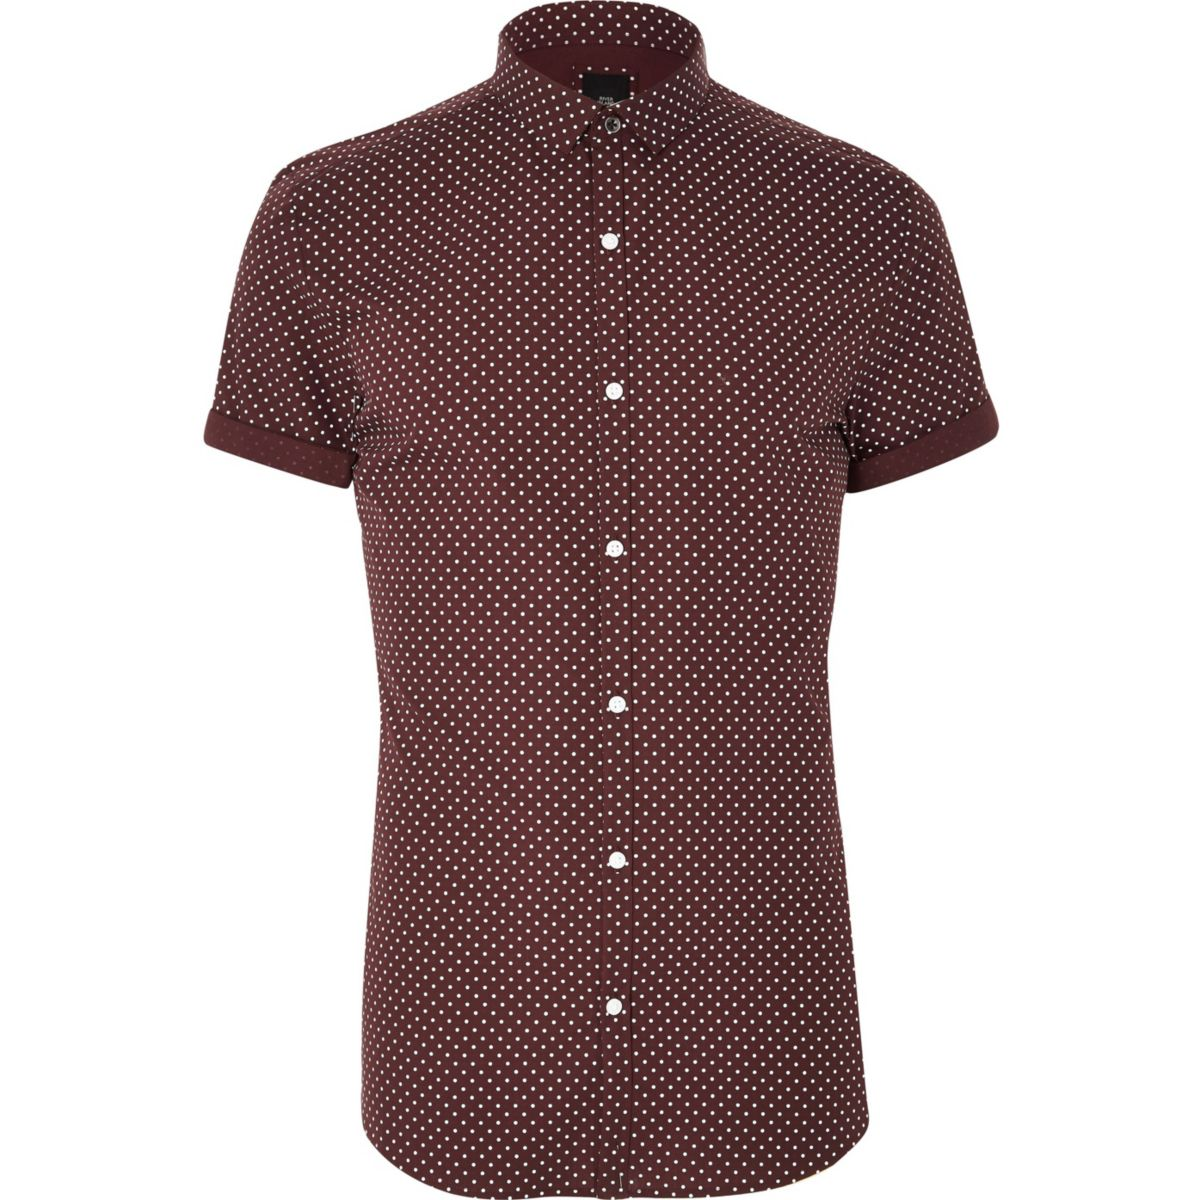 Big and Tall burgundy polka dot shirt